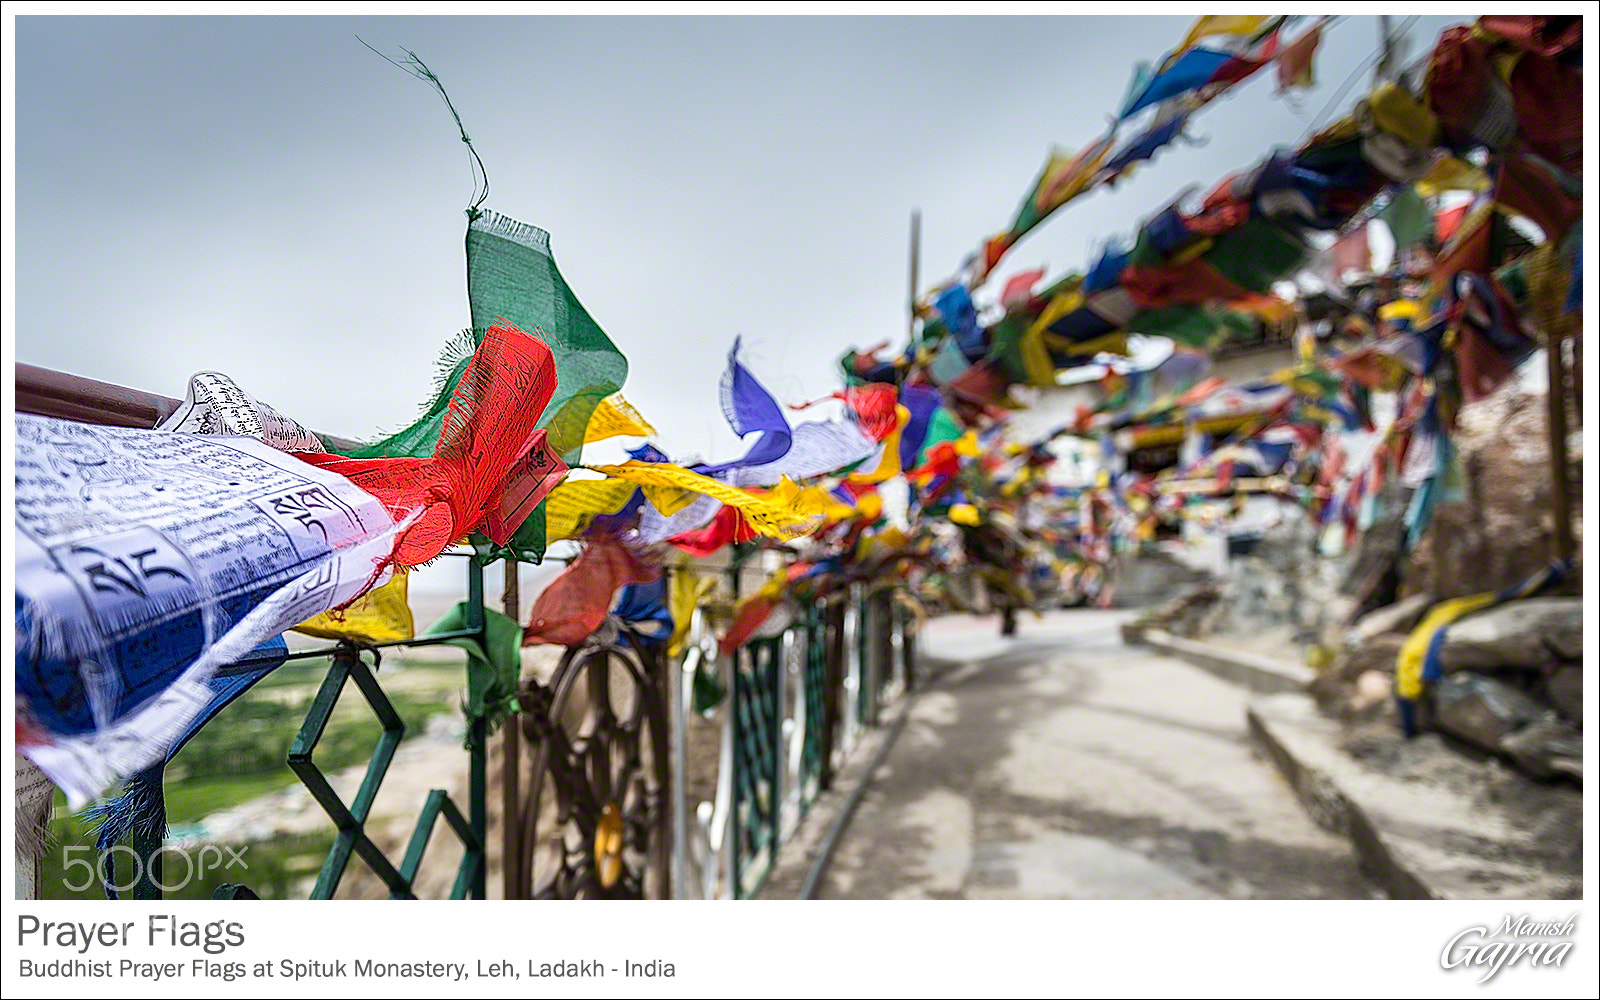 Photograph Prayer Flags by Manish Gajria on 500px